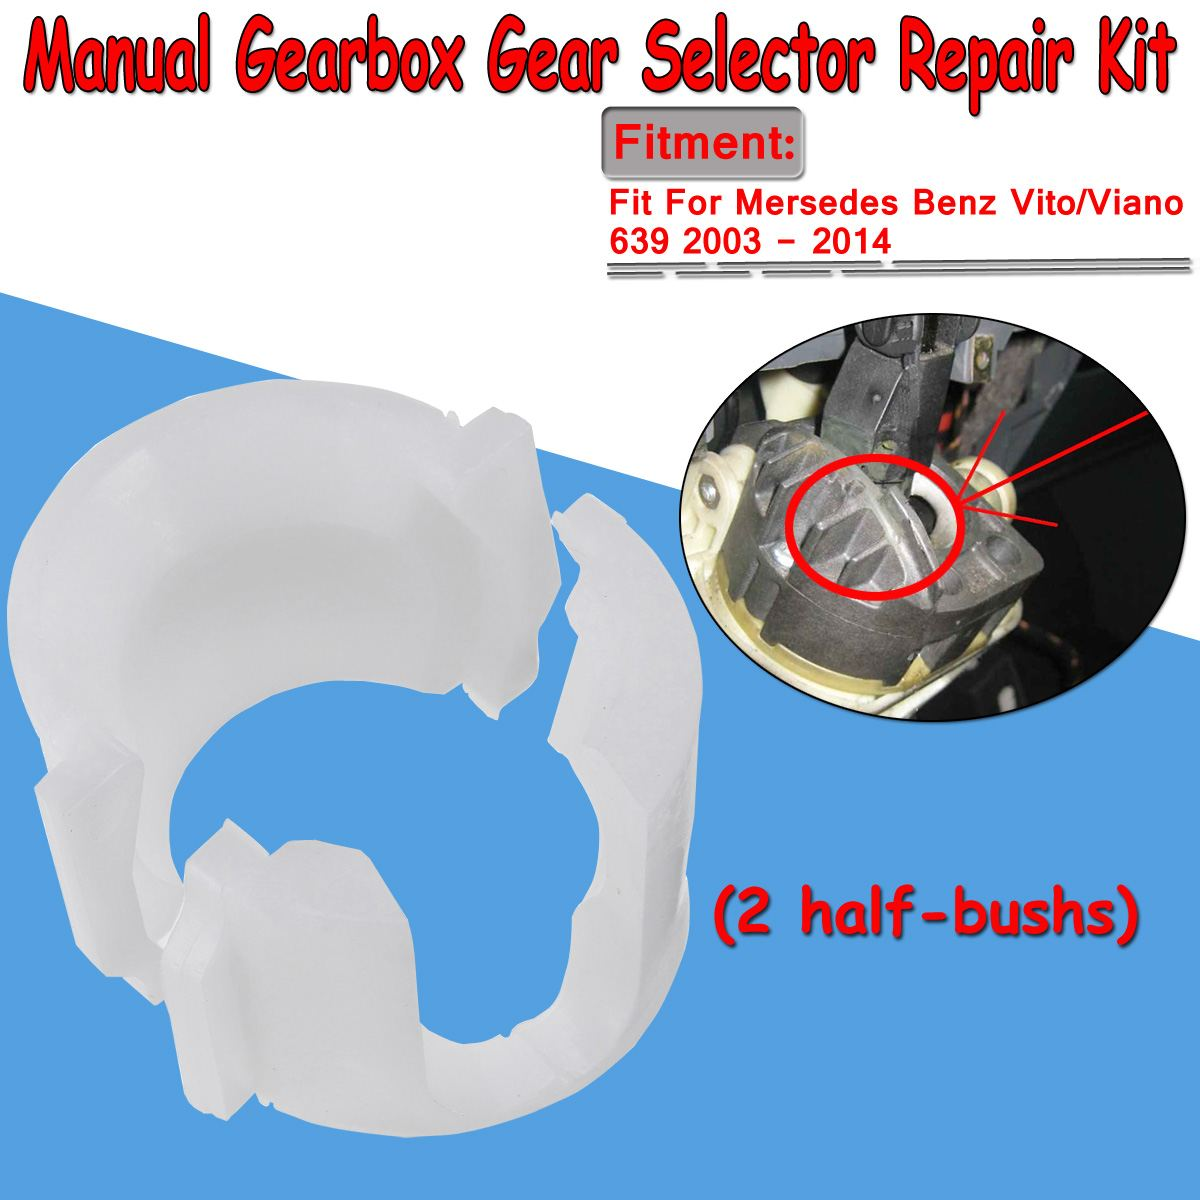 stick repair kit 639 manual gearbox For Mercedes Vito Viano gear ...